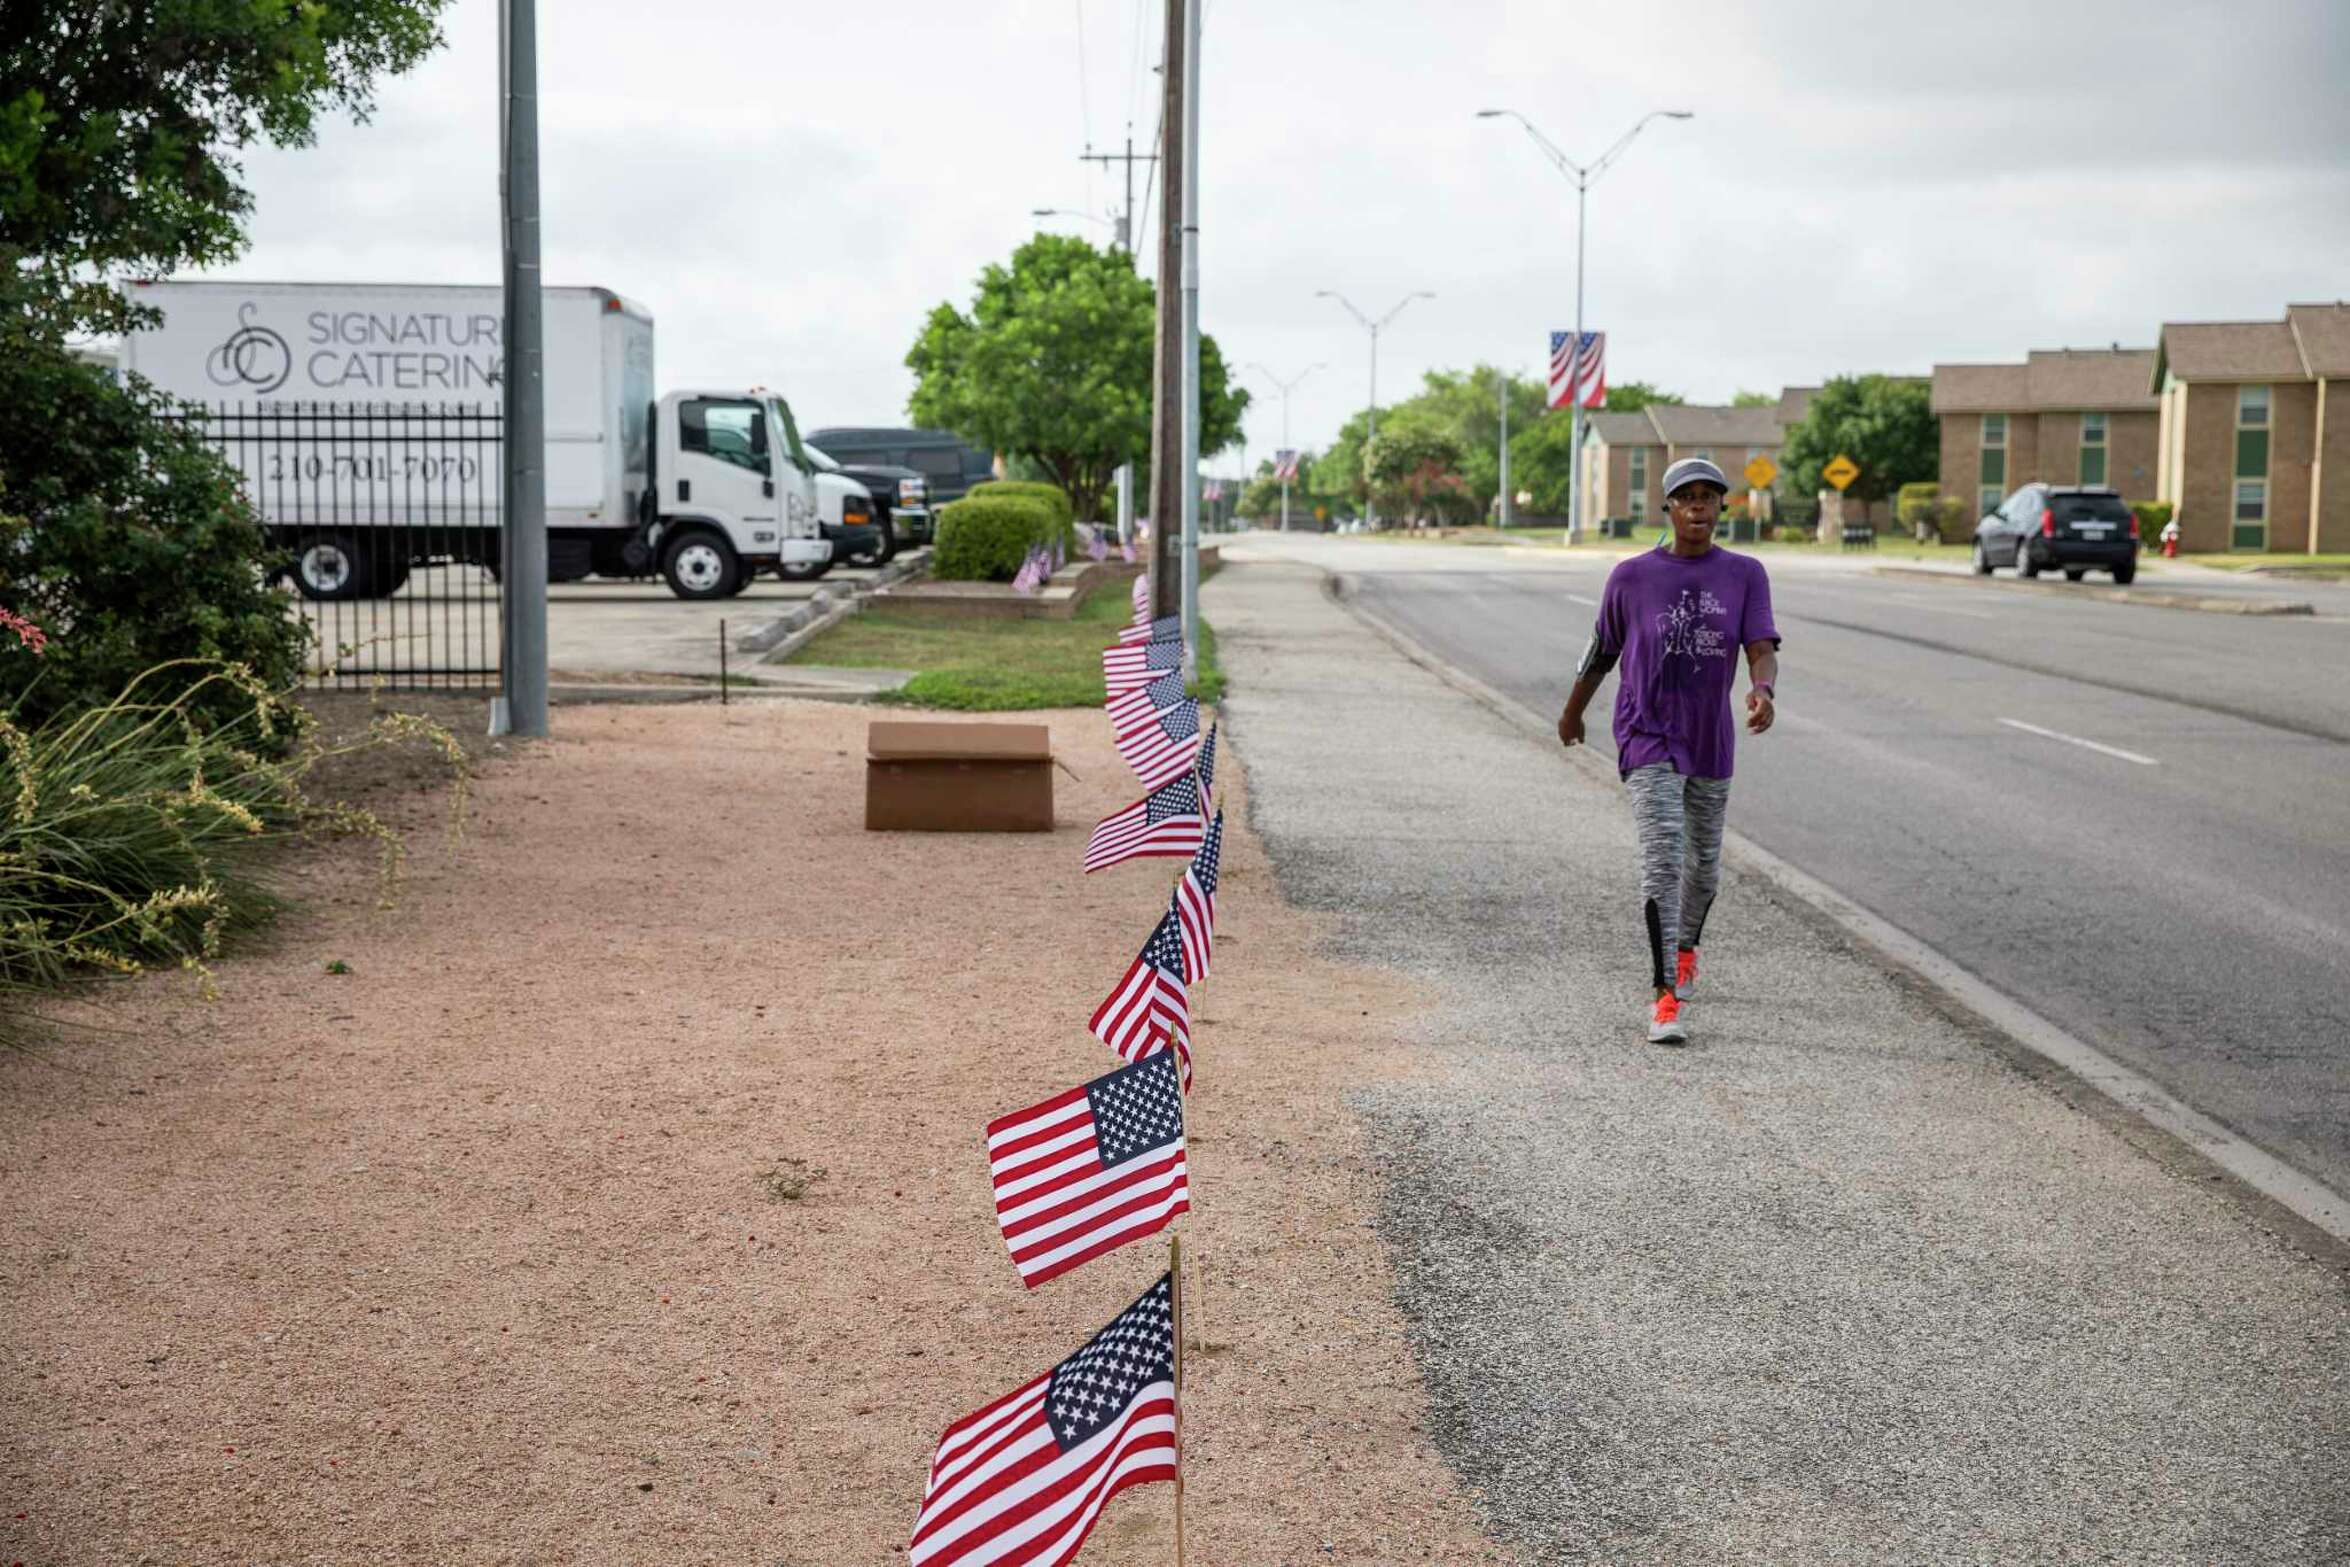 Eagle Scout candidate Kyle Dorsey decided to place 6,000 flags, with the help of volunteers and the cooperation of the city of Schertz, along a 3-mile stretch of Schertz Parkway to celebrate Independence Day this year